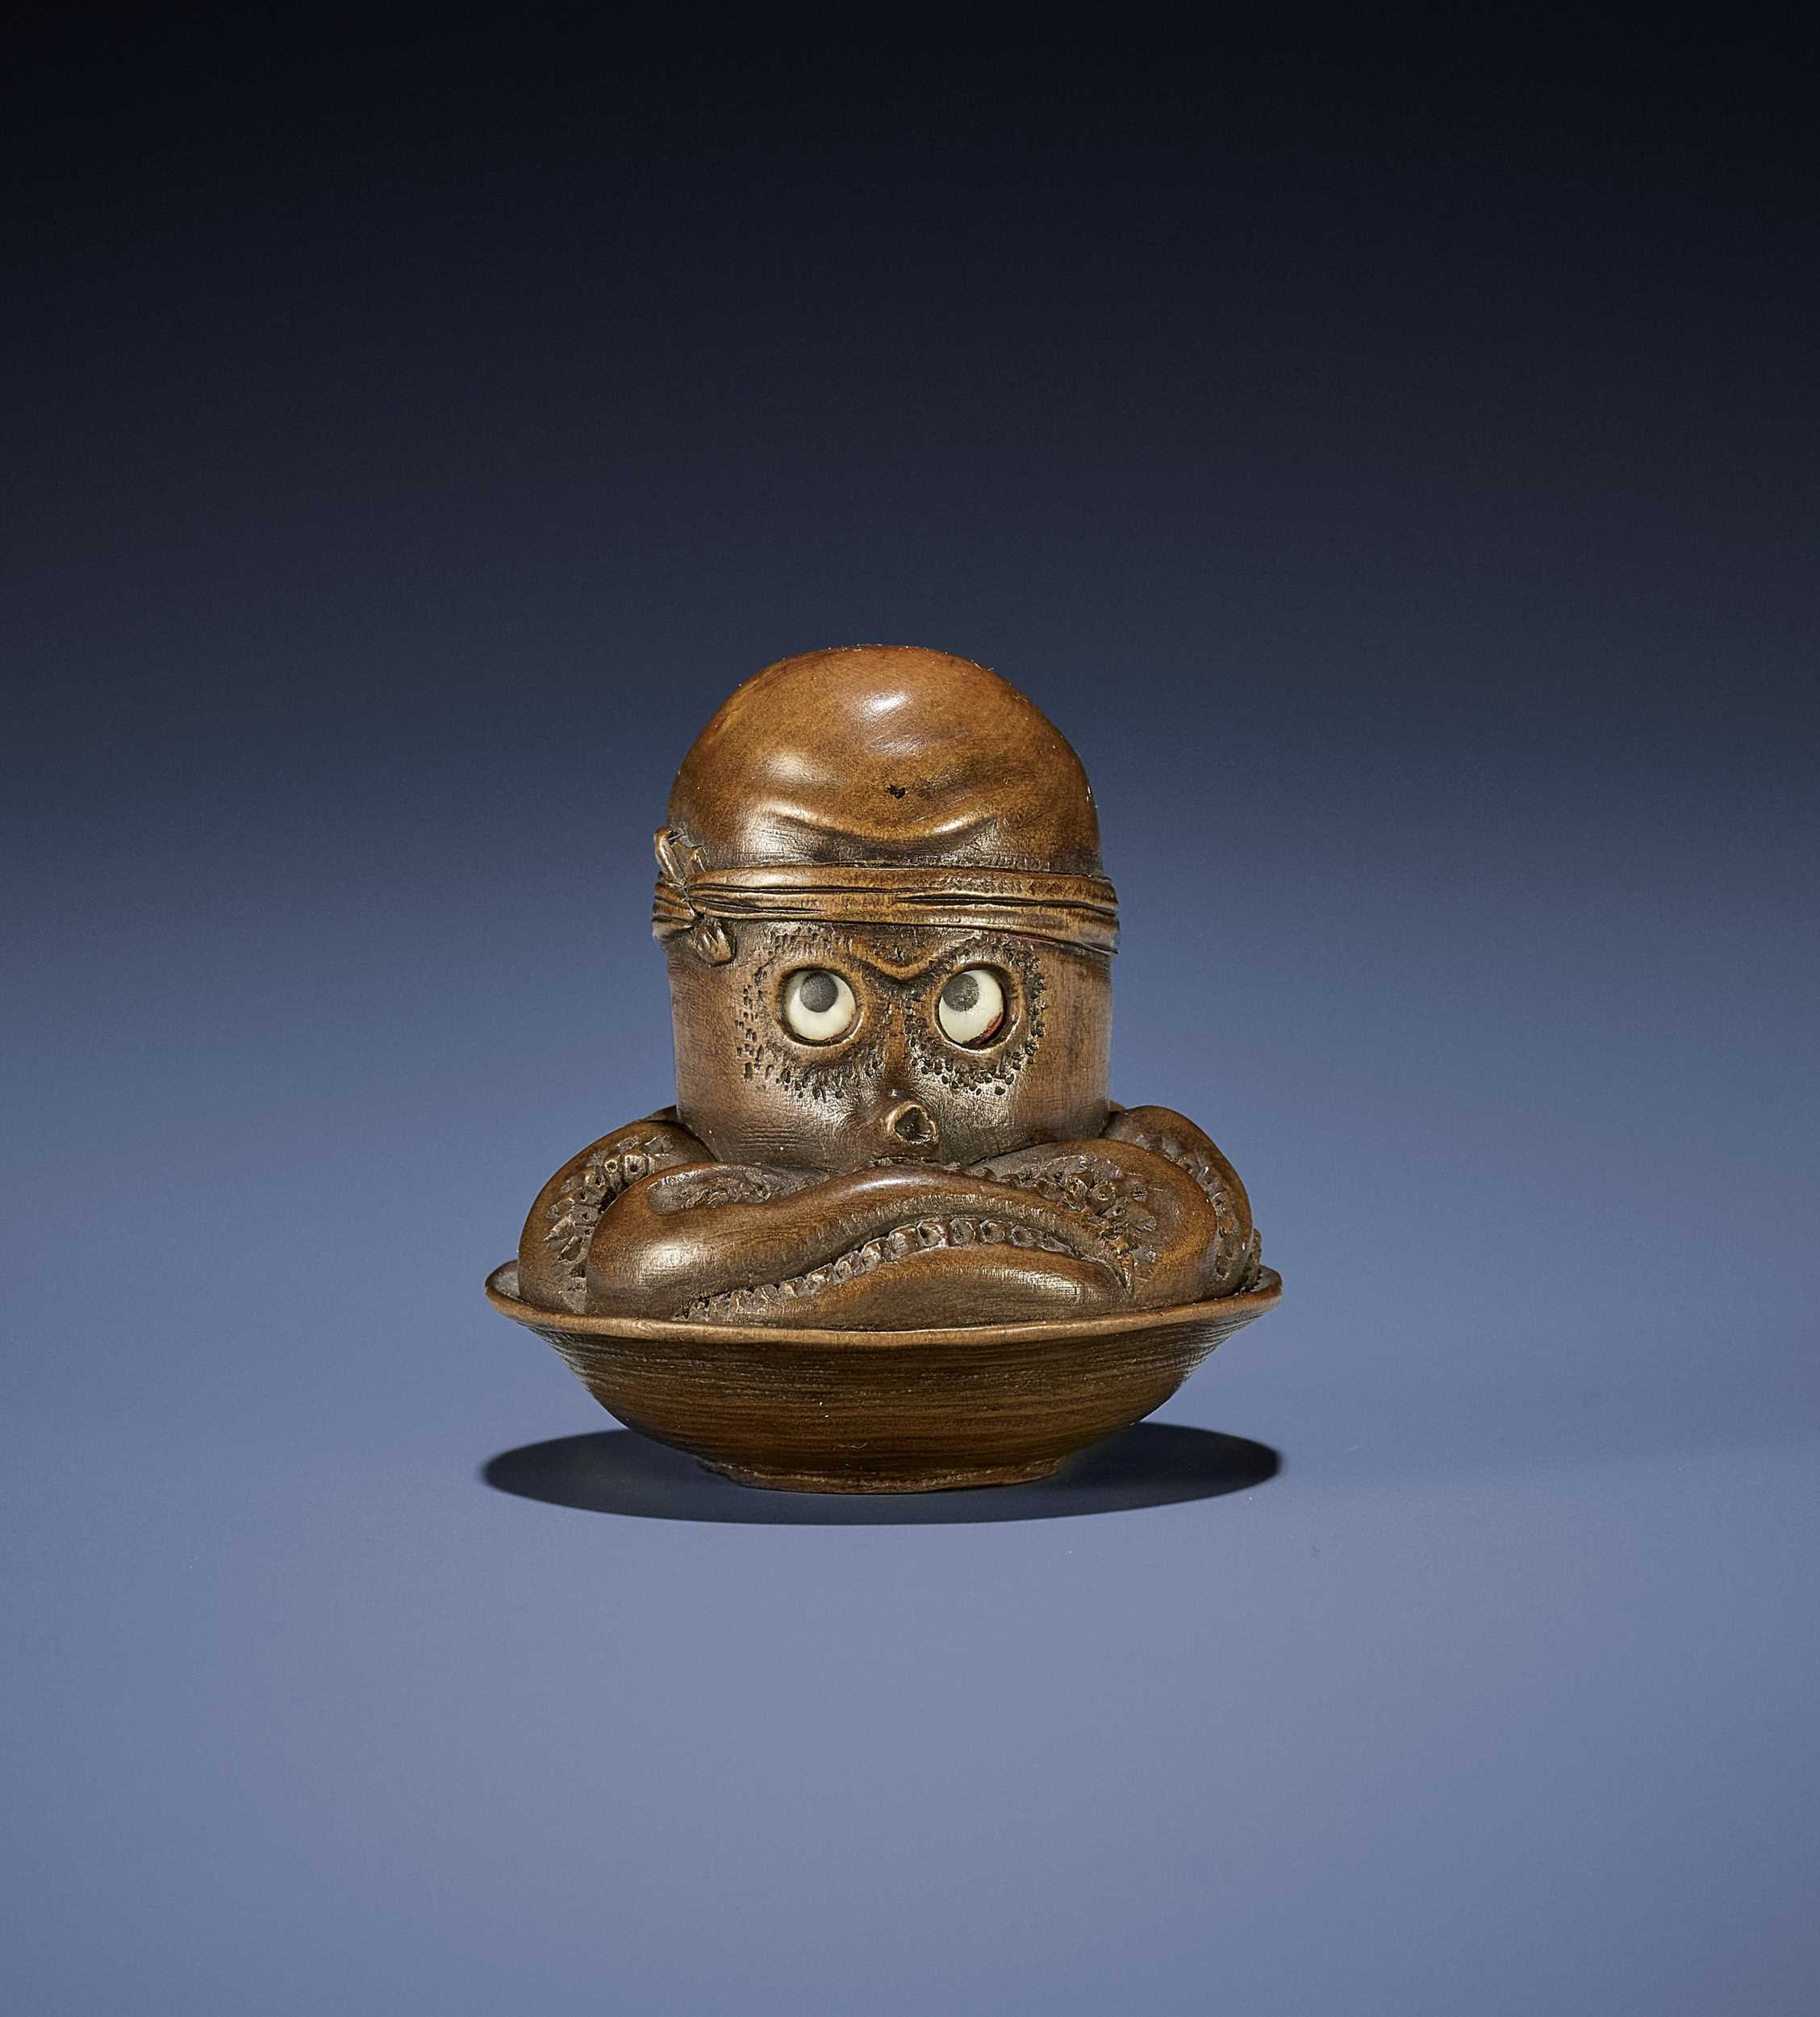 Lot 108 - A SUPERB WOOD NETSUKE OF AN OCTOPUS IN SURIBACHI WITH MOVABLE EYES, ATTRIBUTED TO MINKO